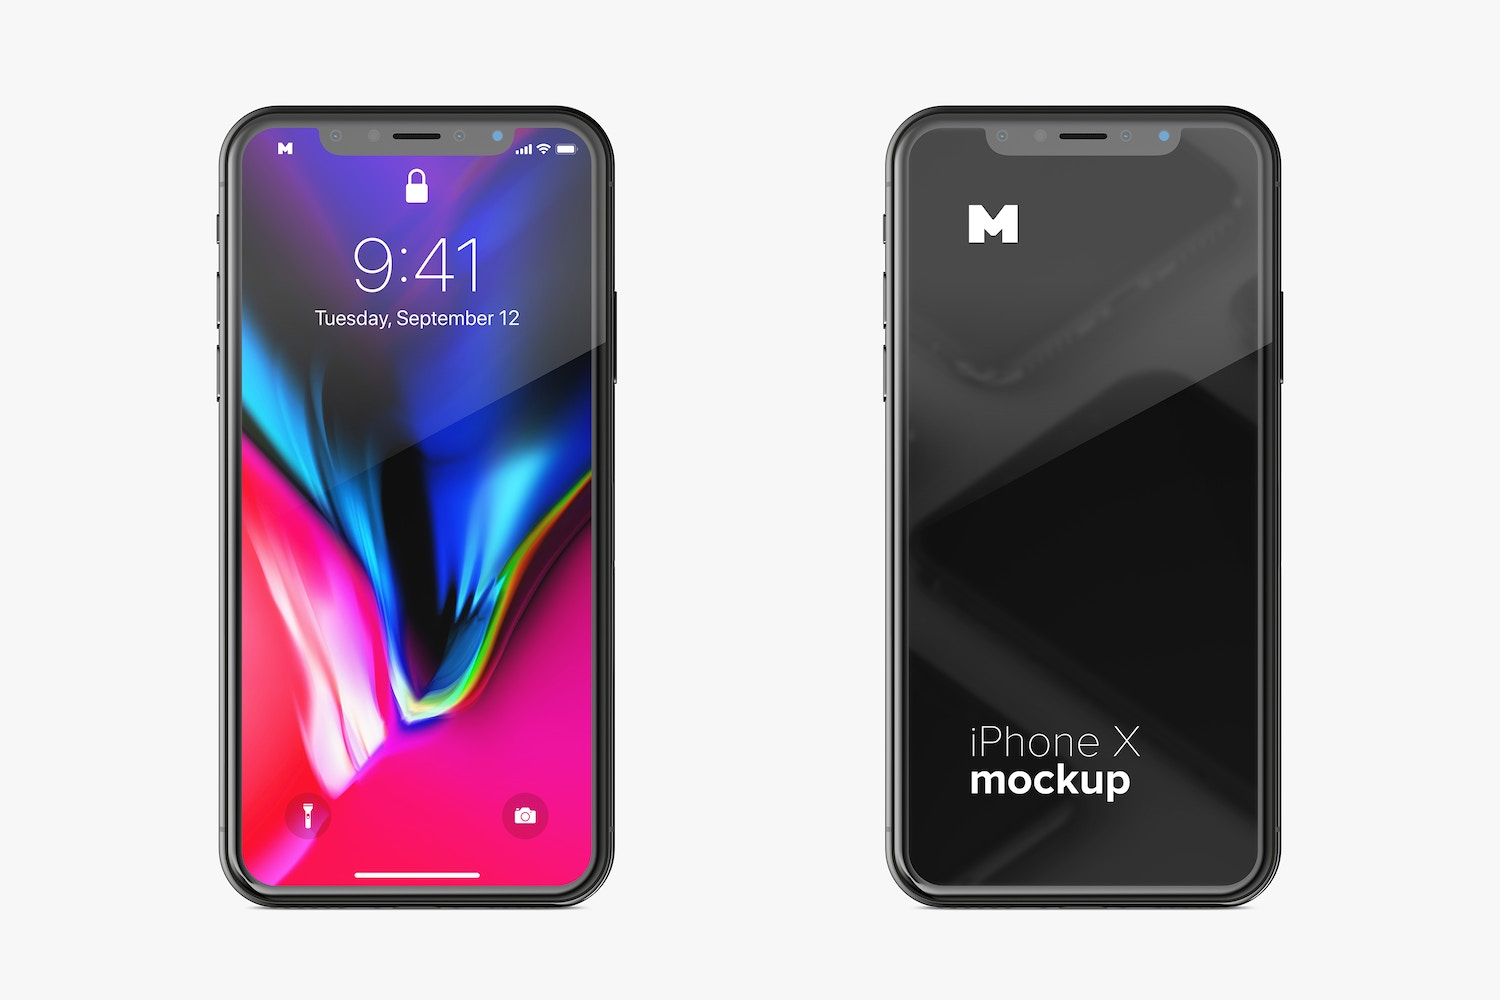 Free iPhone X Mockup 01 by Original Mockups on Original Mockups